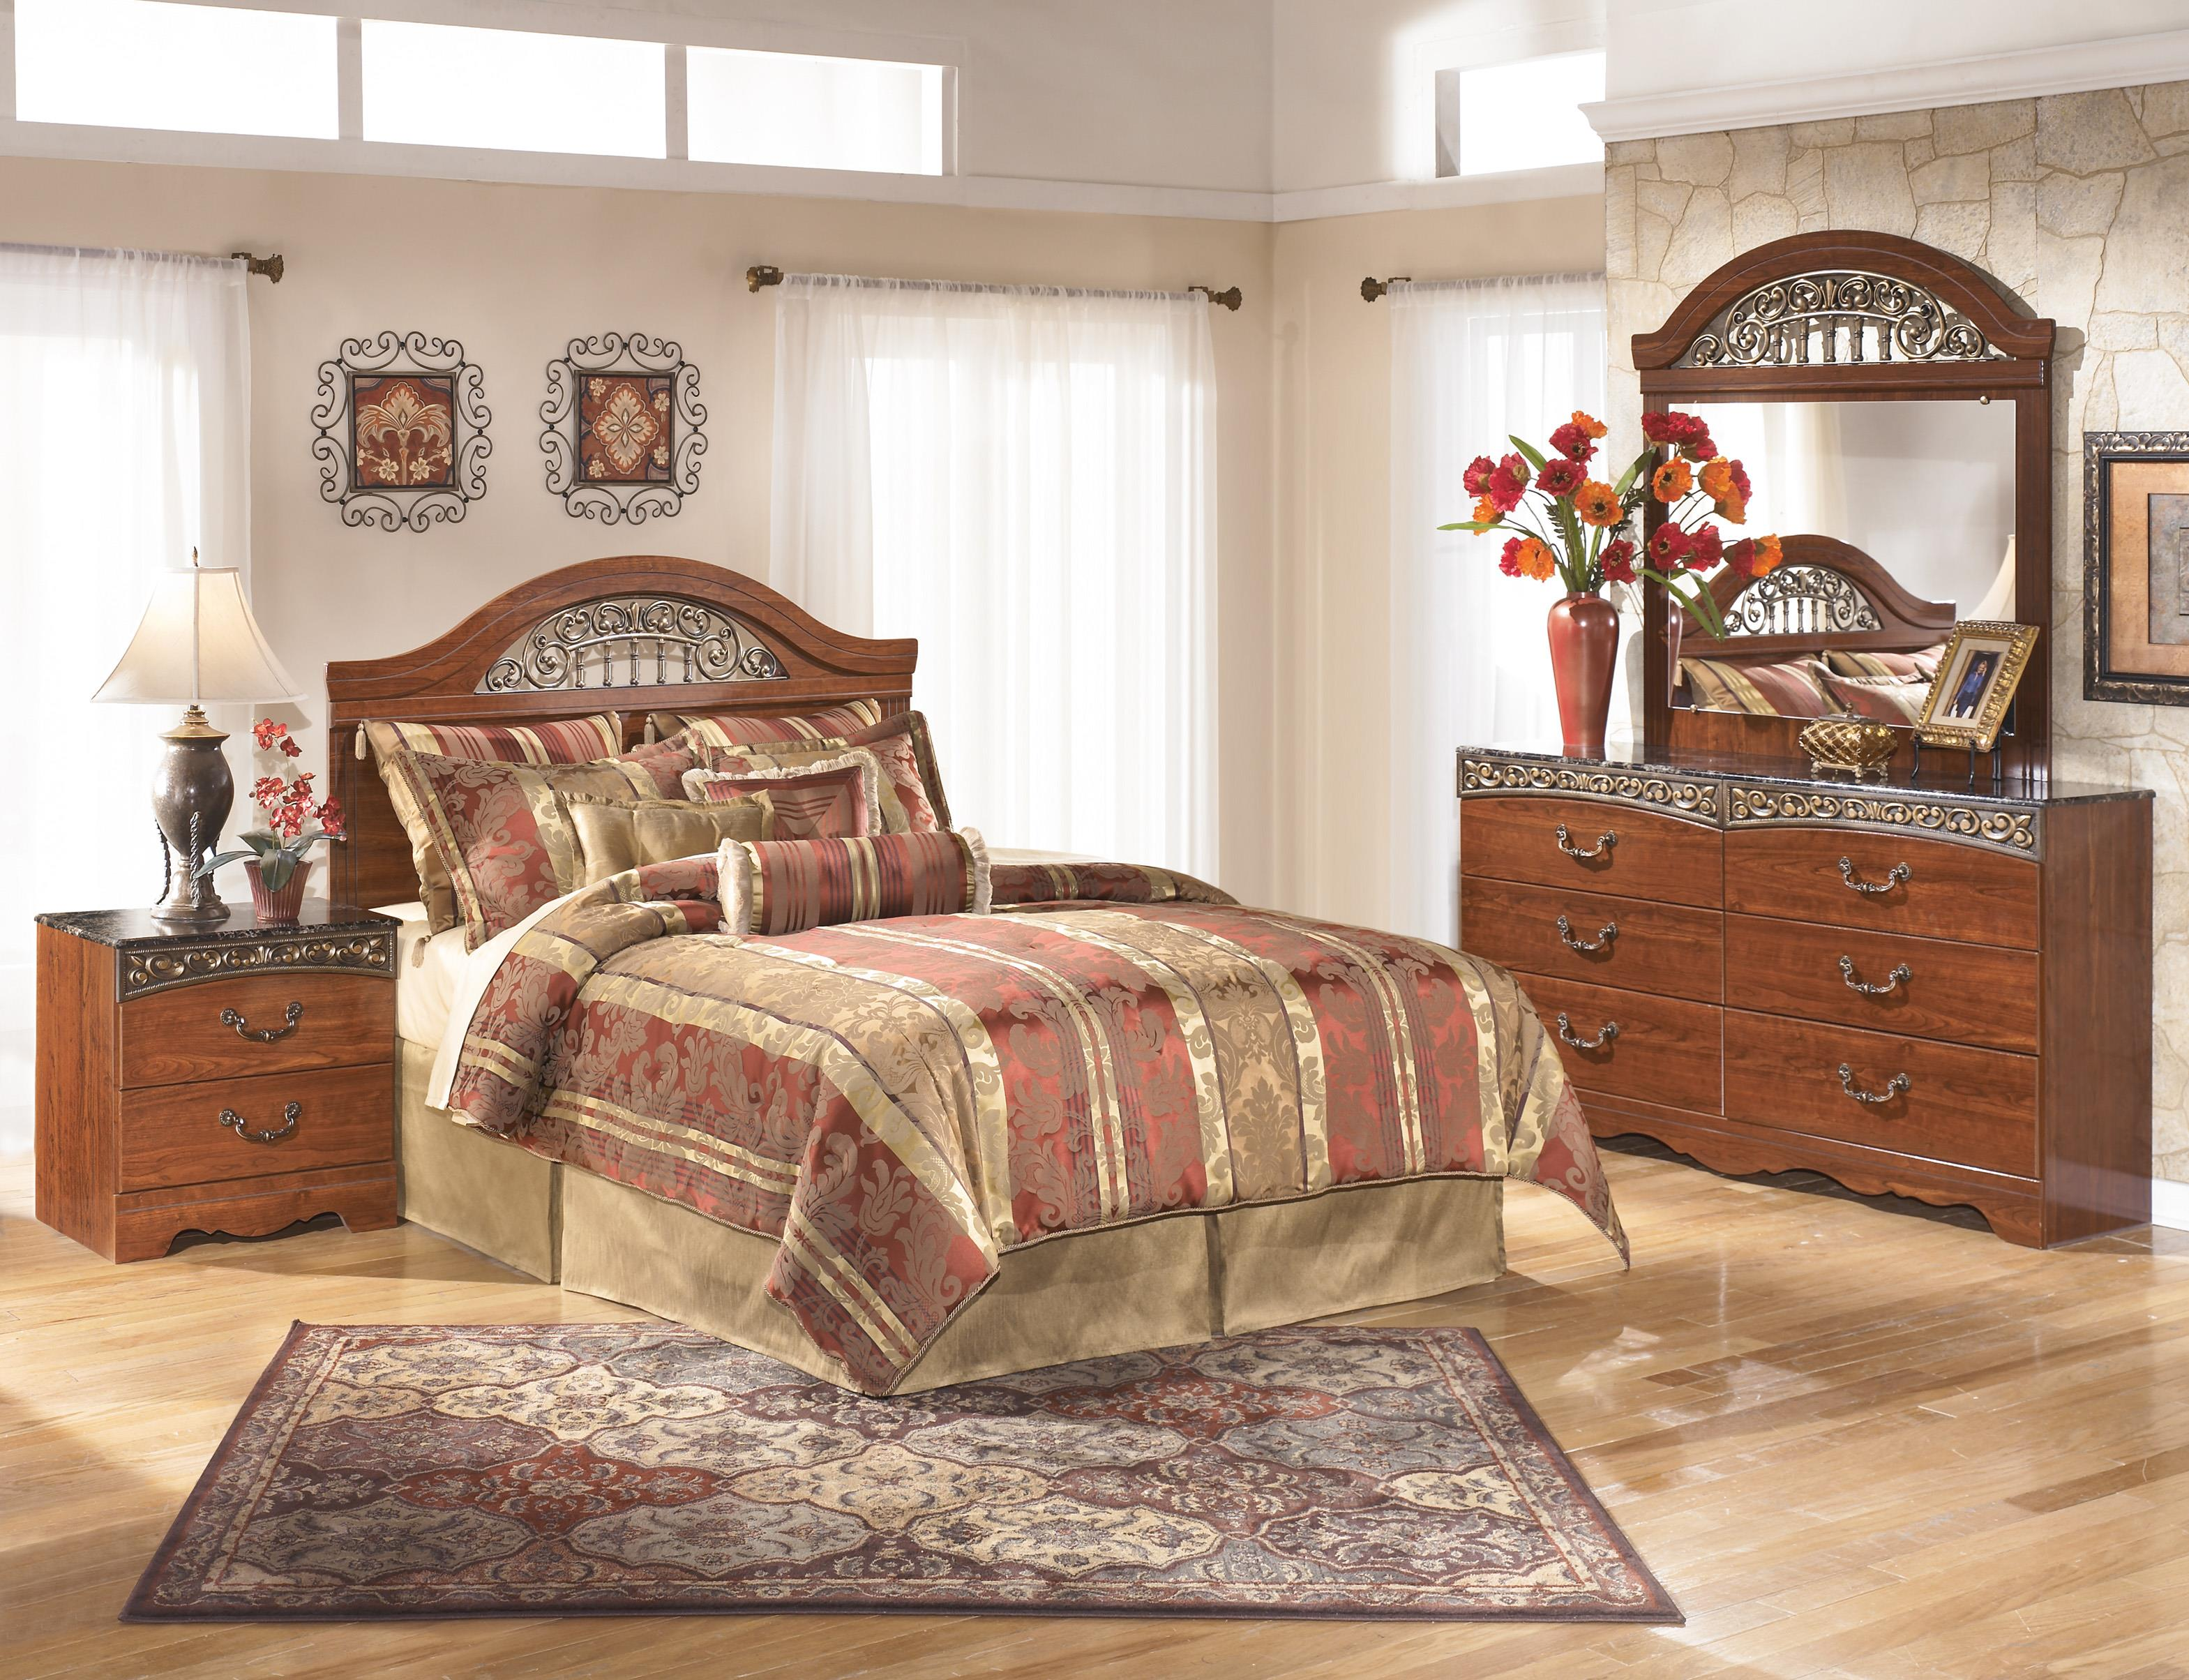 Signature Design by Ashley Fairbrooks Estate Queen Bedroom Group - Item Number: B105 Q Bedroom Group 5